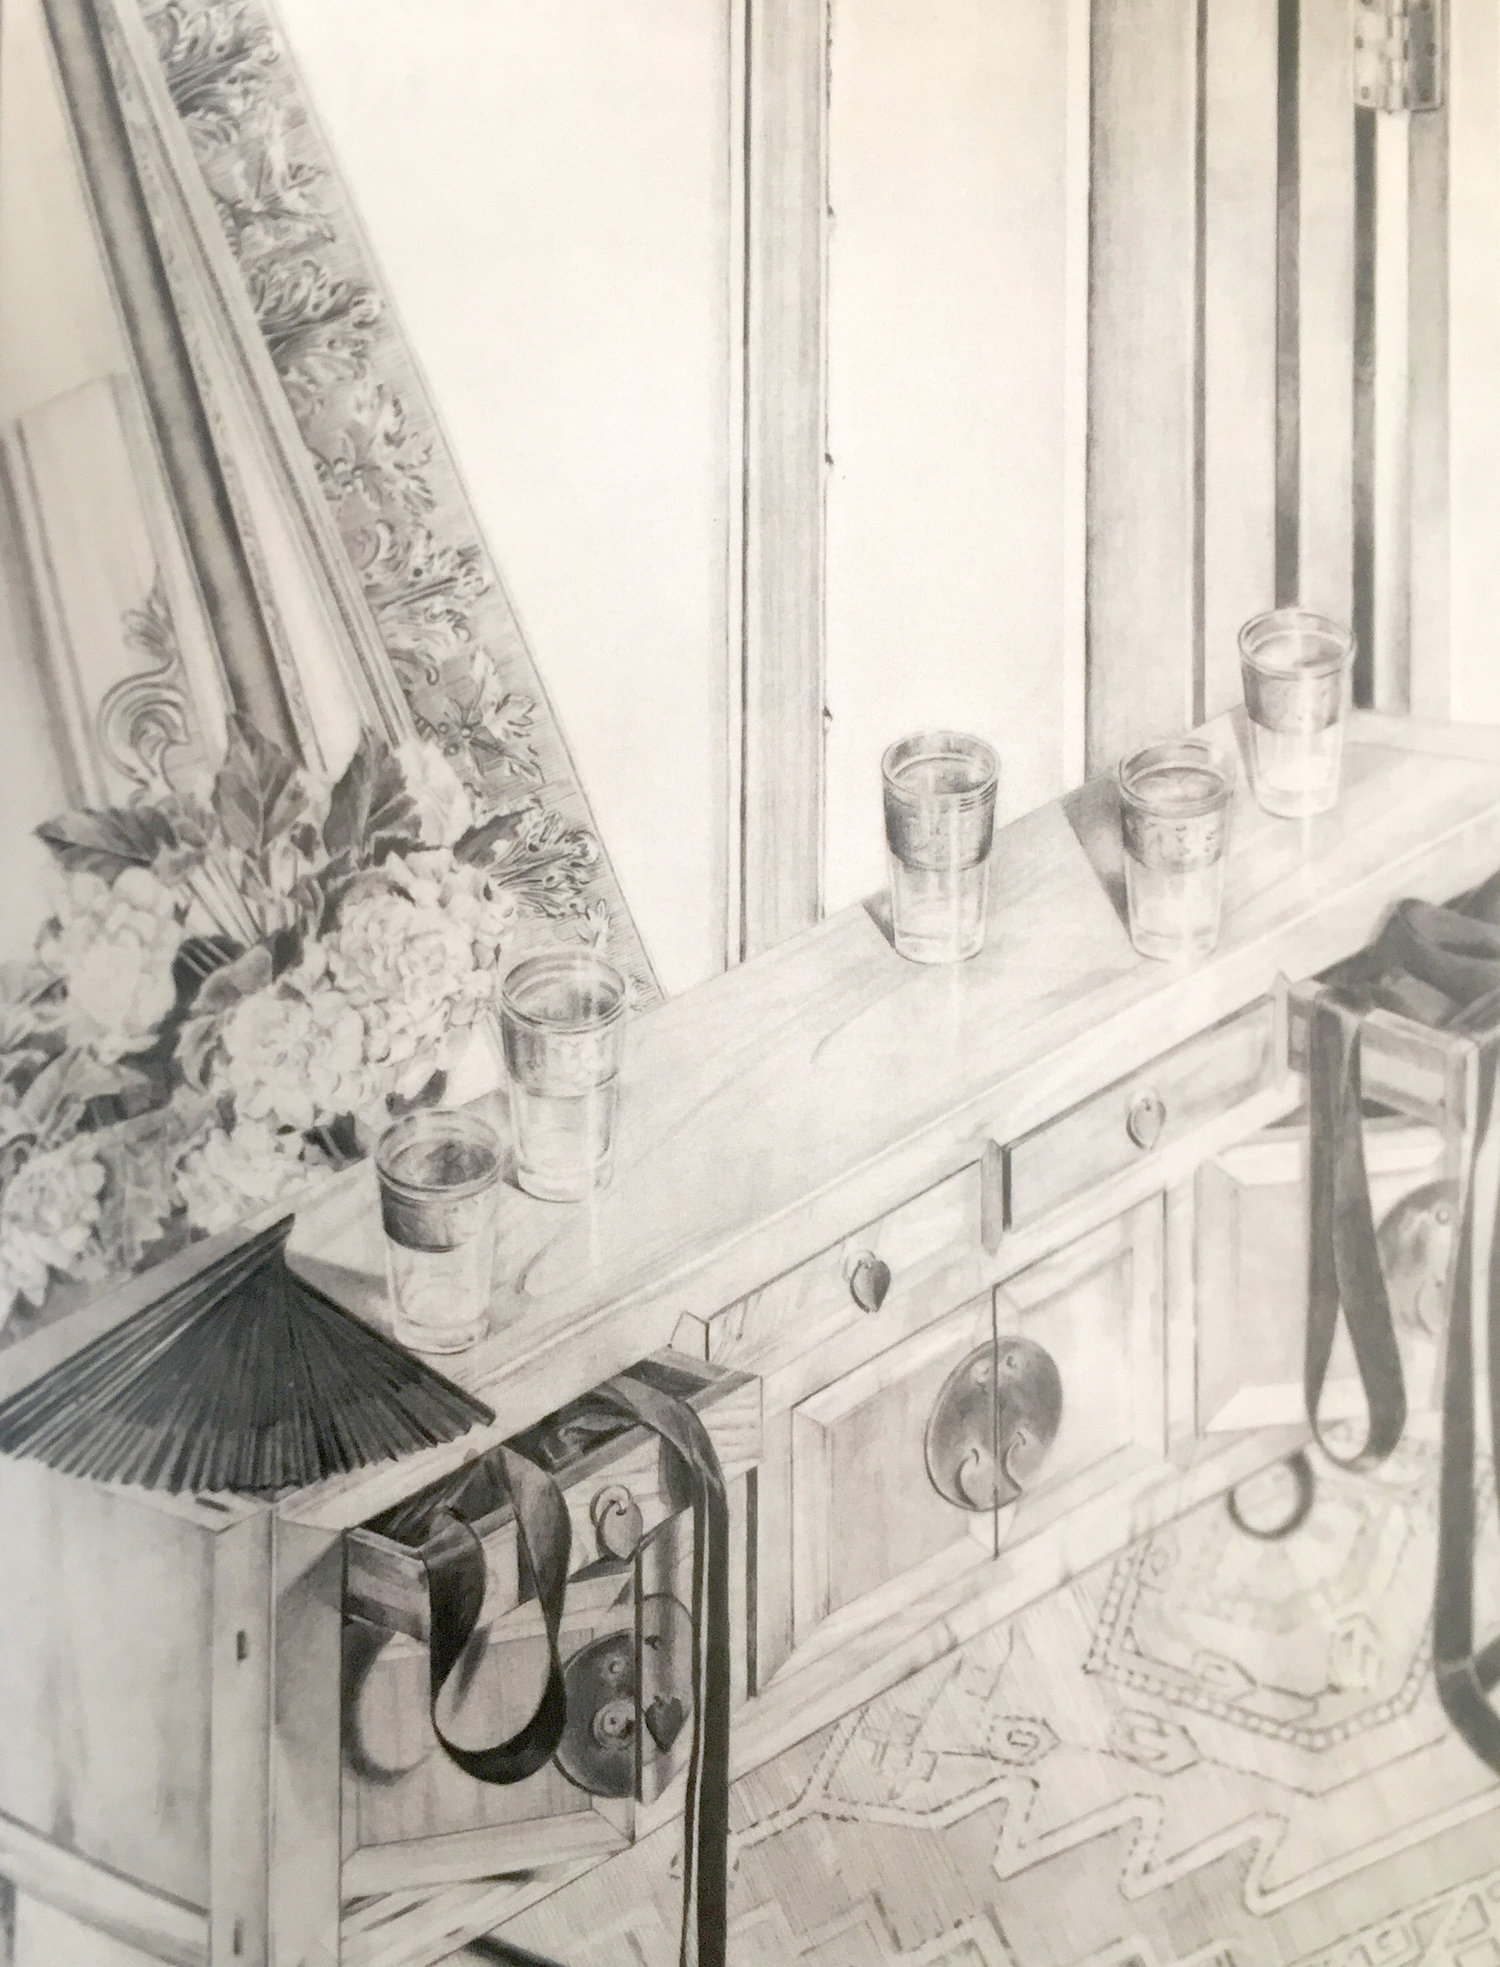 """Carole Doyle Peel,  Fan with Ribbons and Water Glasses , 2000, graphite, 40x32"""". Collection of the Estate of Carole Doyle Peel."""